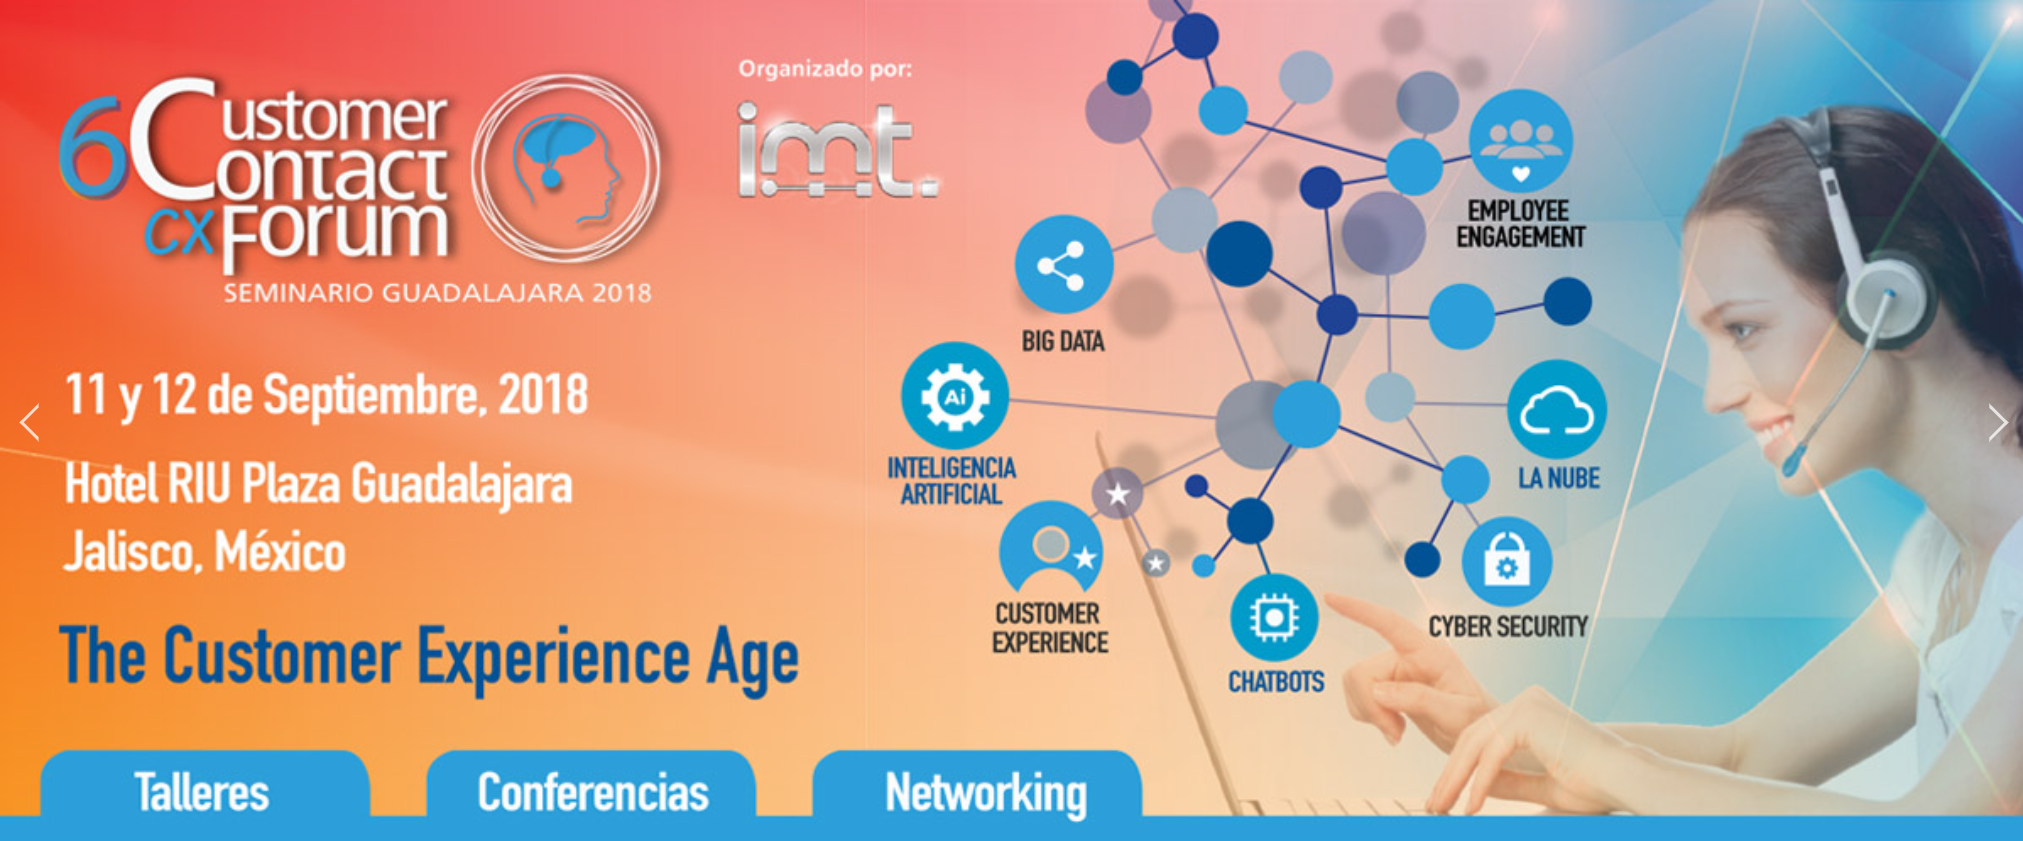 imt-customerexperienceage